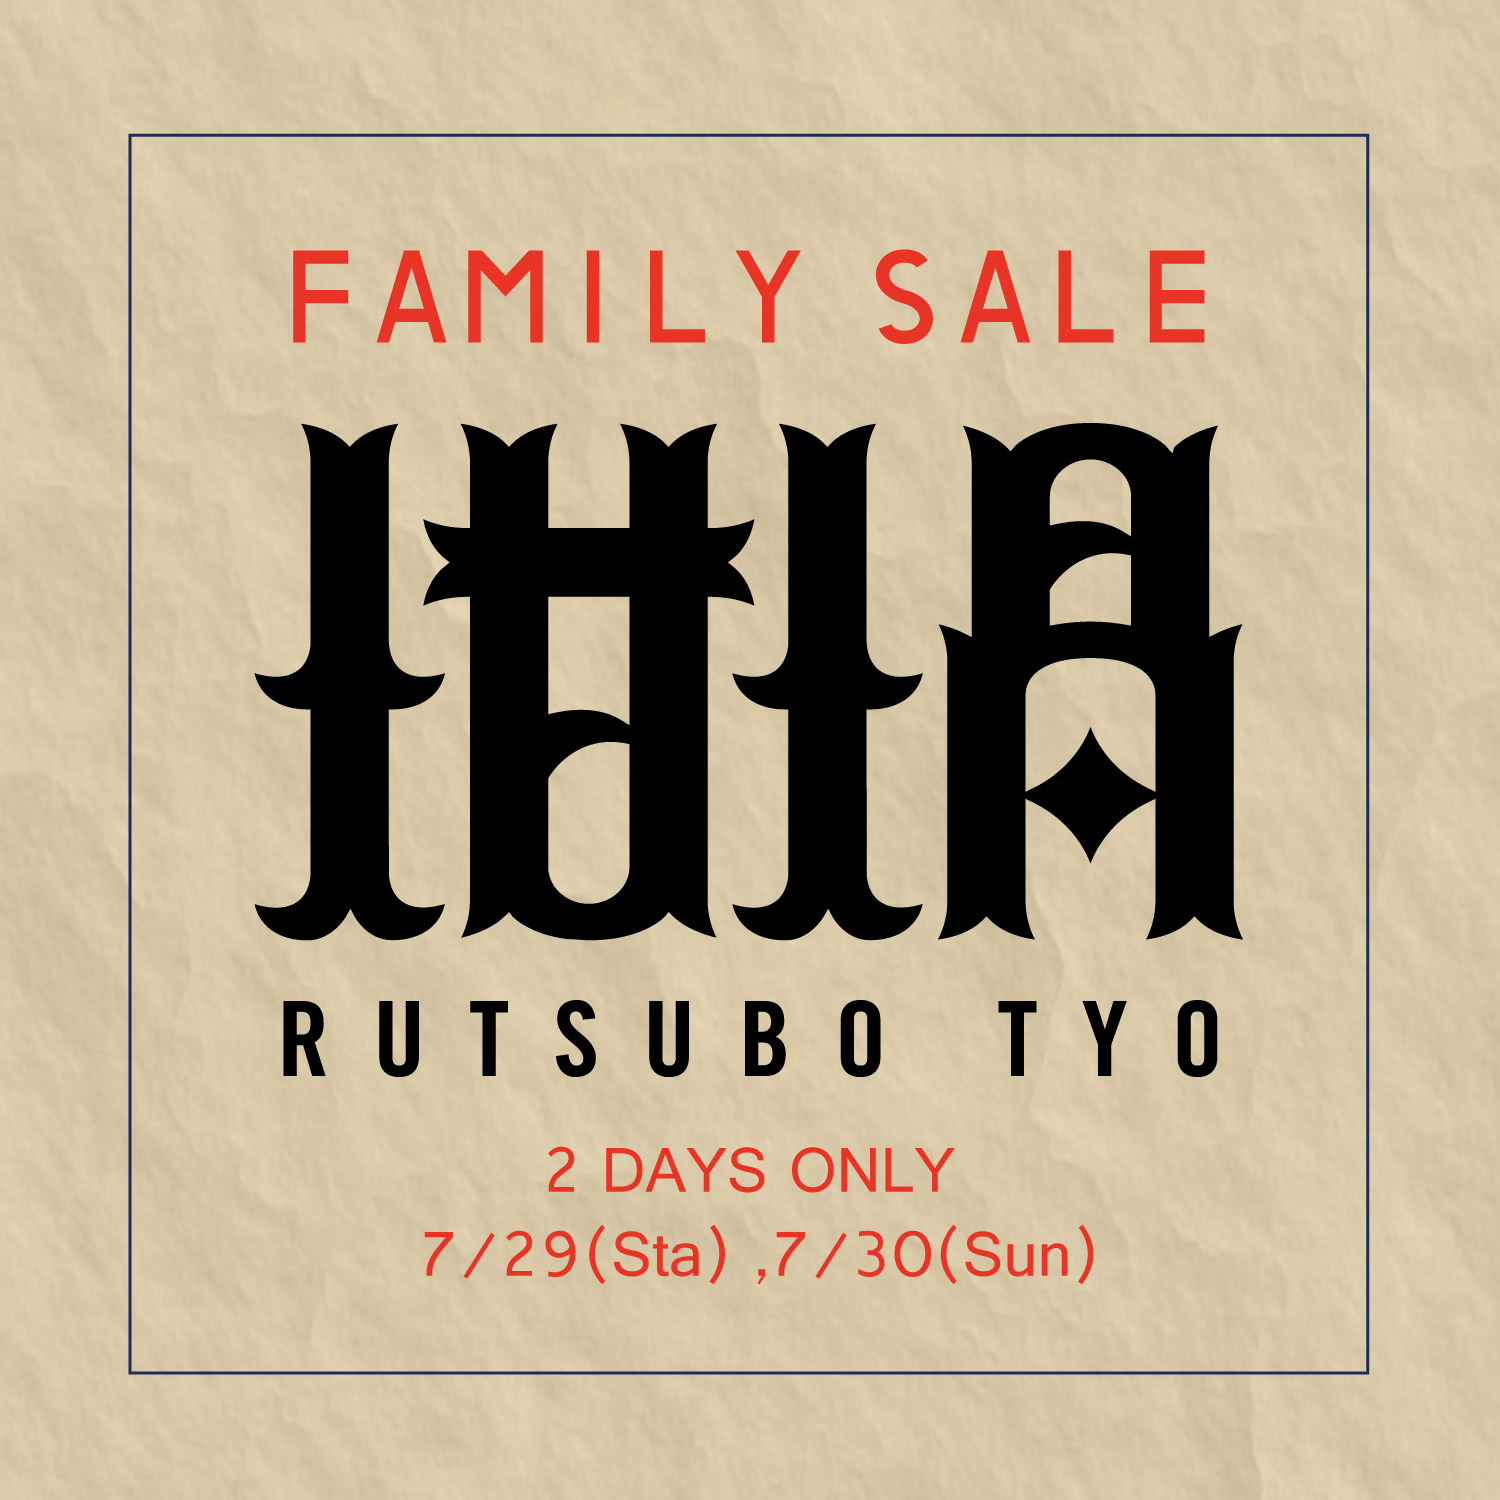 FAMILY-SALE_RUTSUBO-7.29-30